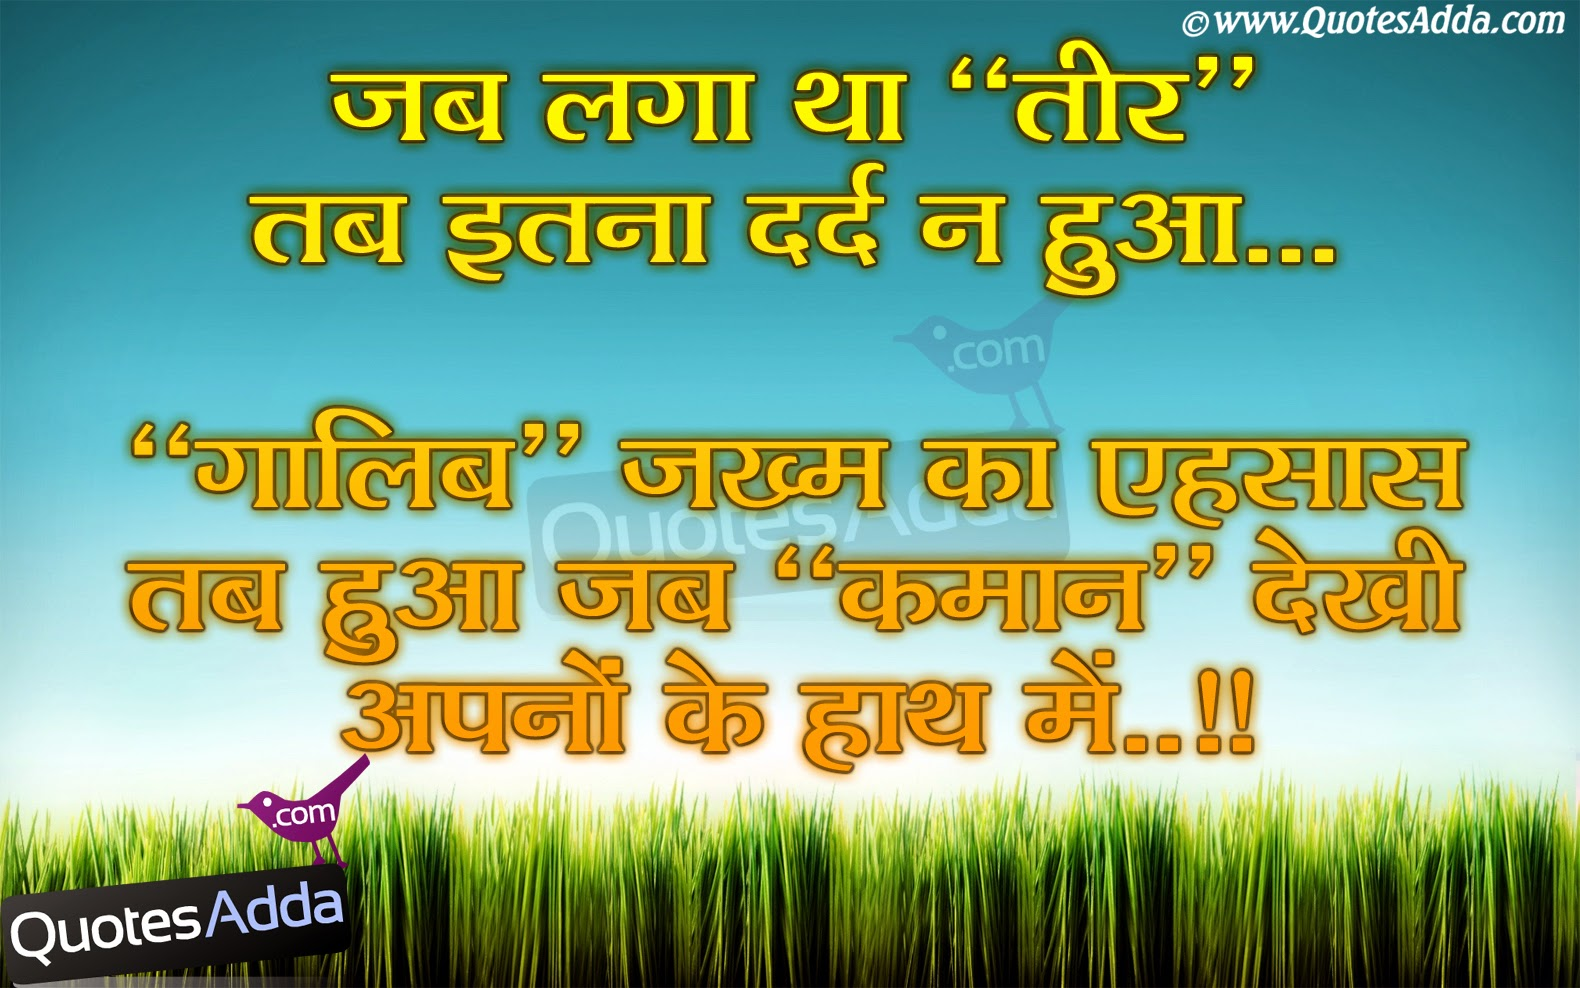 English Quotes About Friendship Quotes About Love And Friendship In Hindi  Dobre For